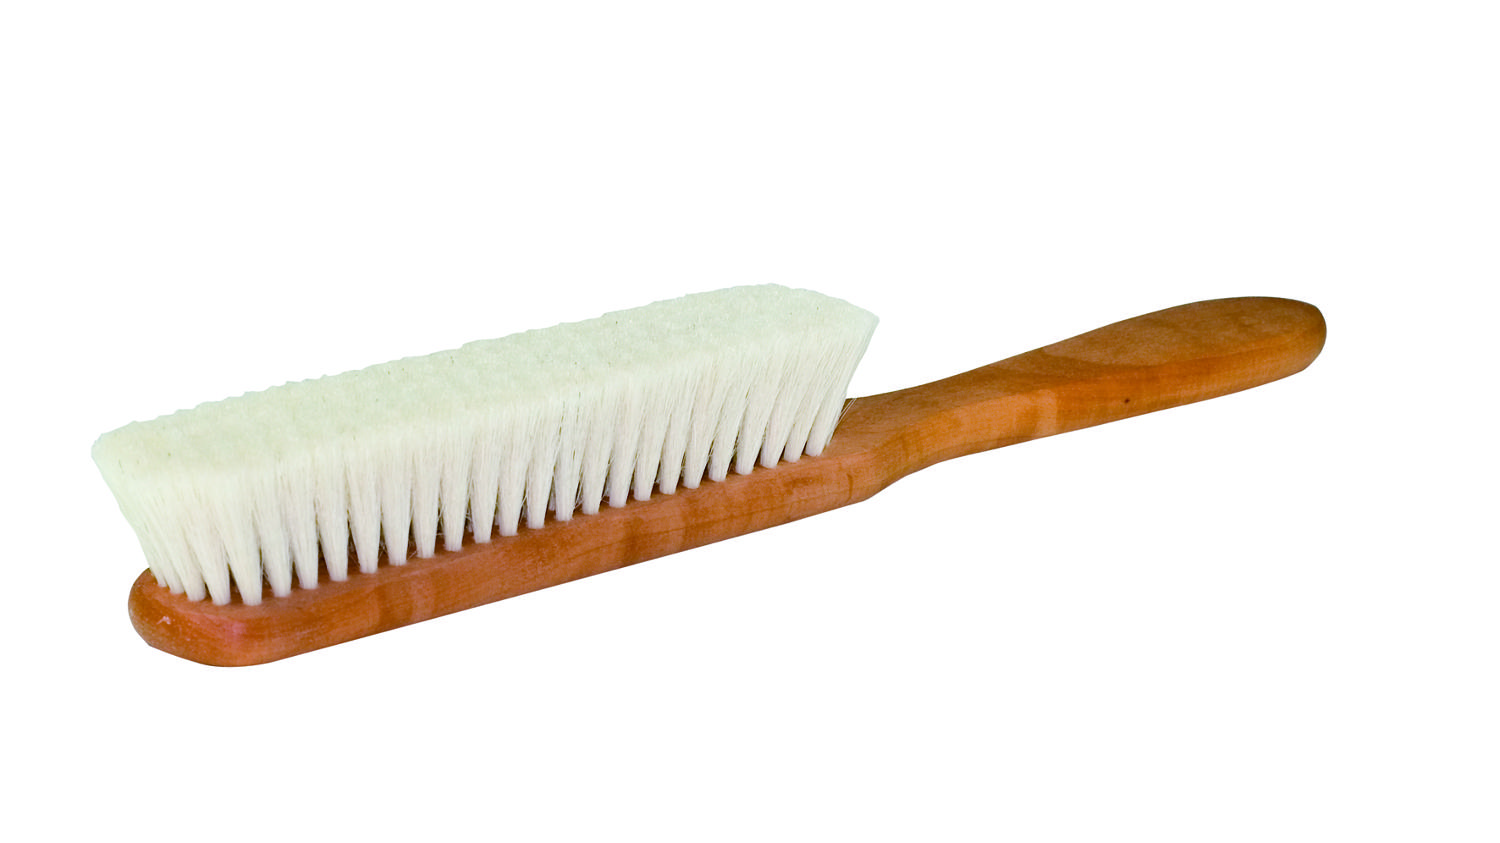 Book Brush - Goat hair and oiled pearwood